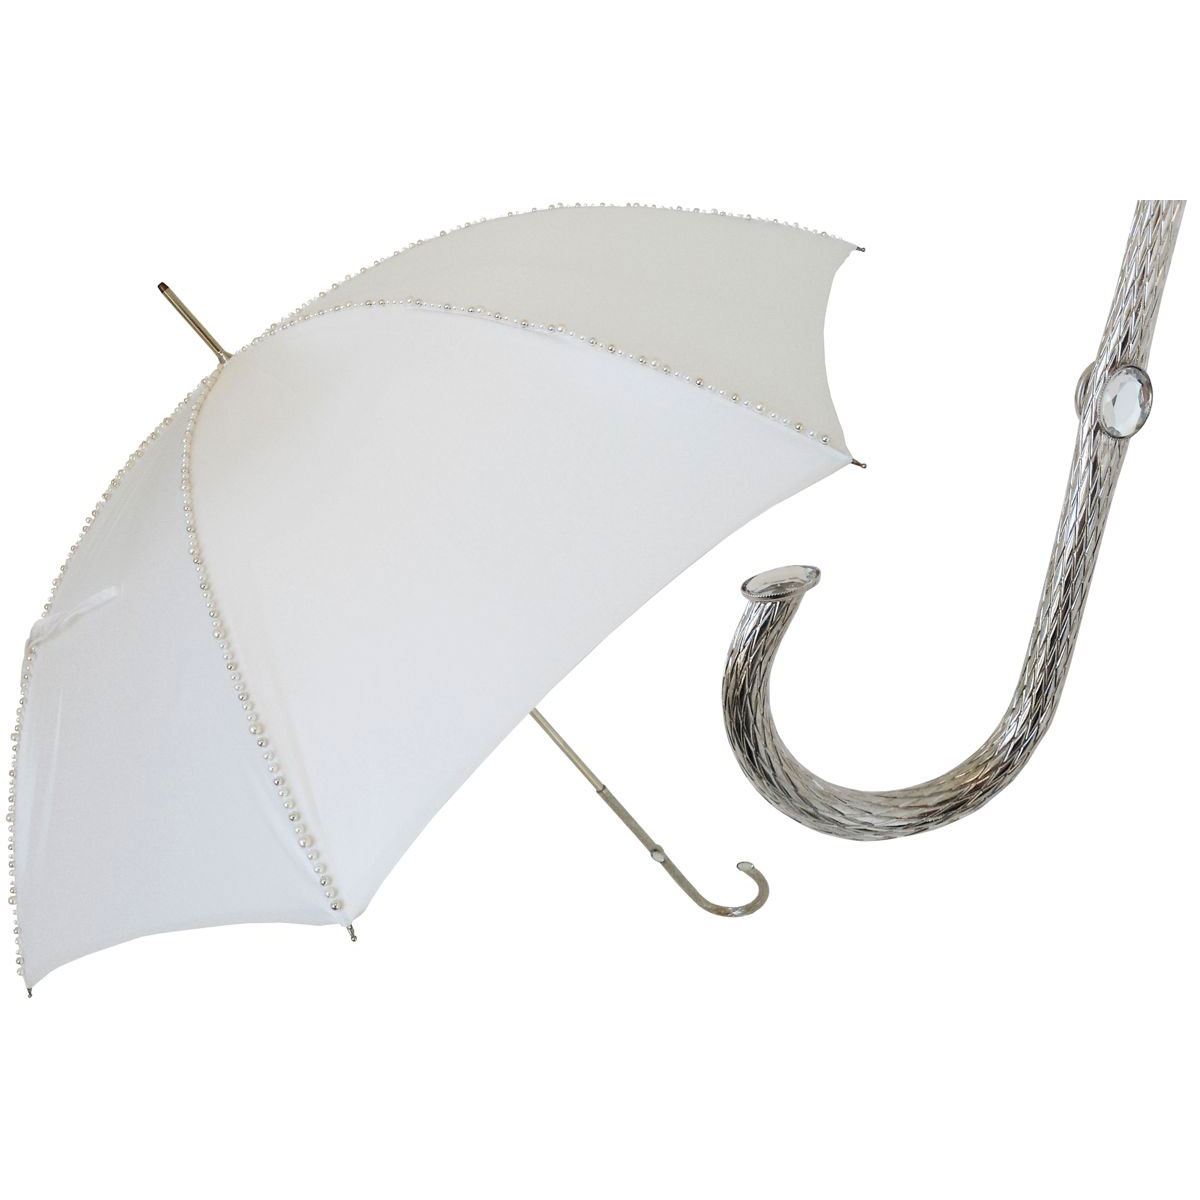 Pasotti Ombrelli White Pearl Bride Luxury Women's Umbrella